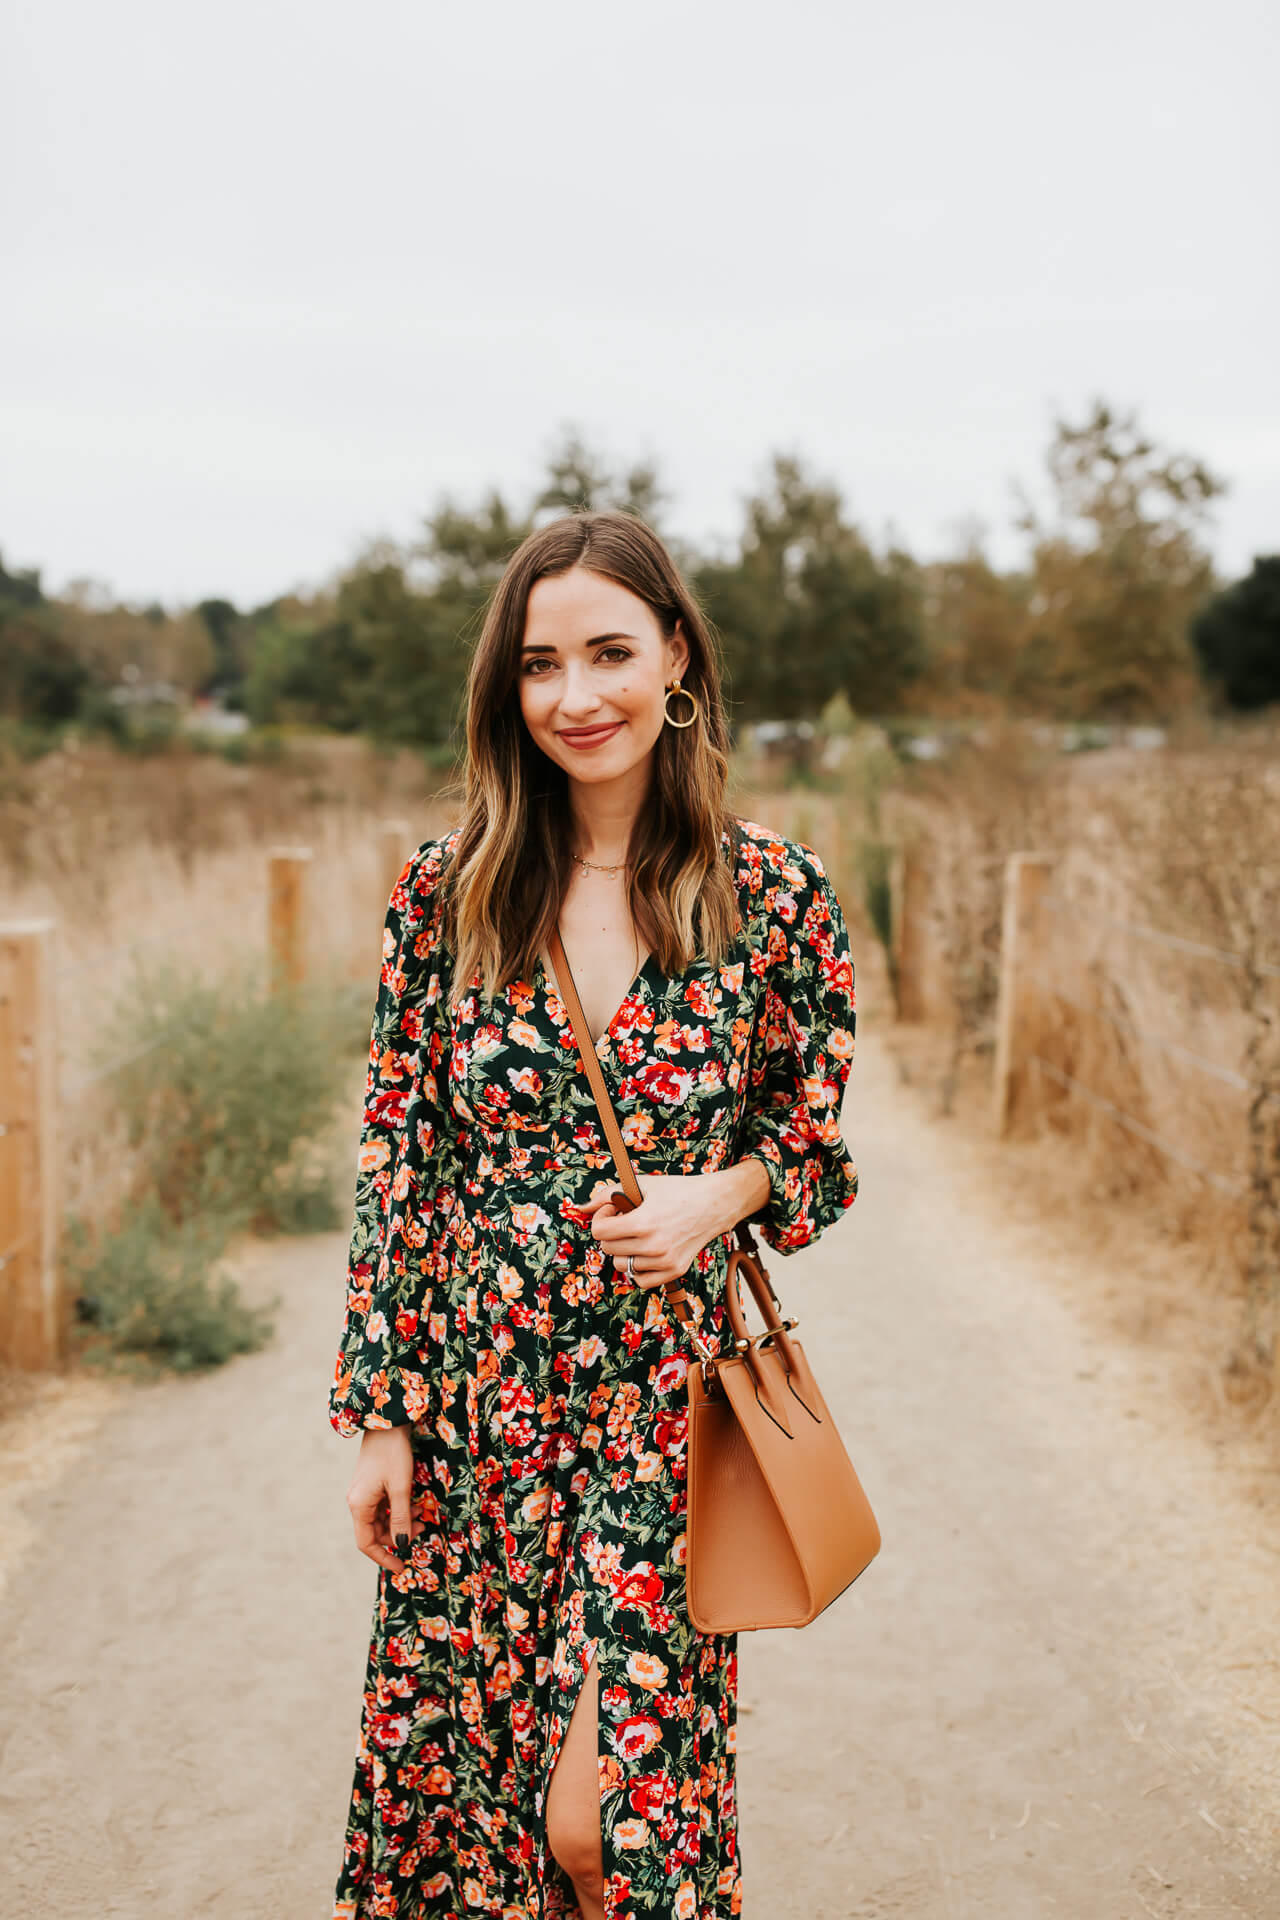 Adoring fall floral styles